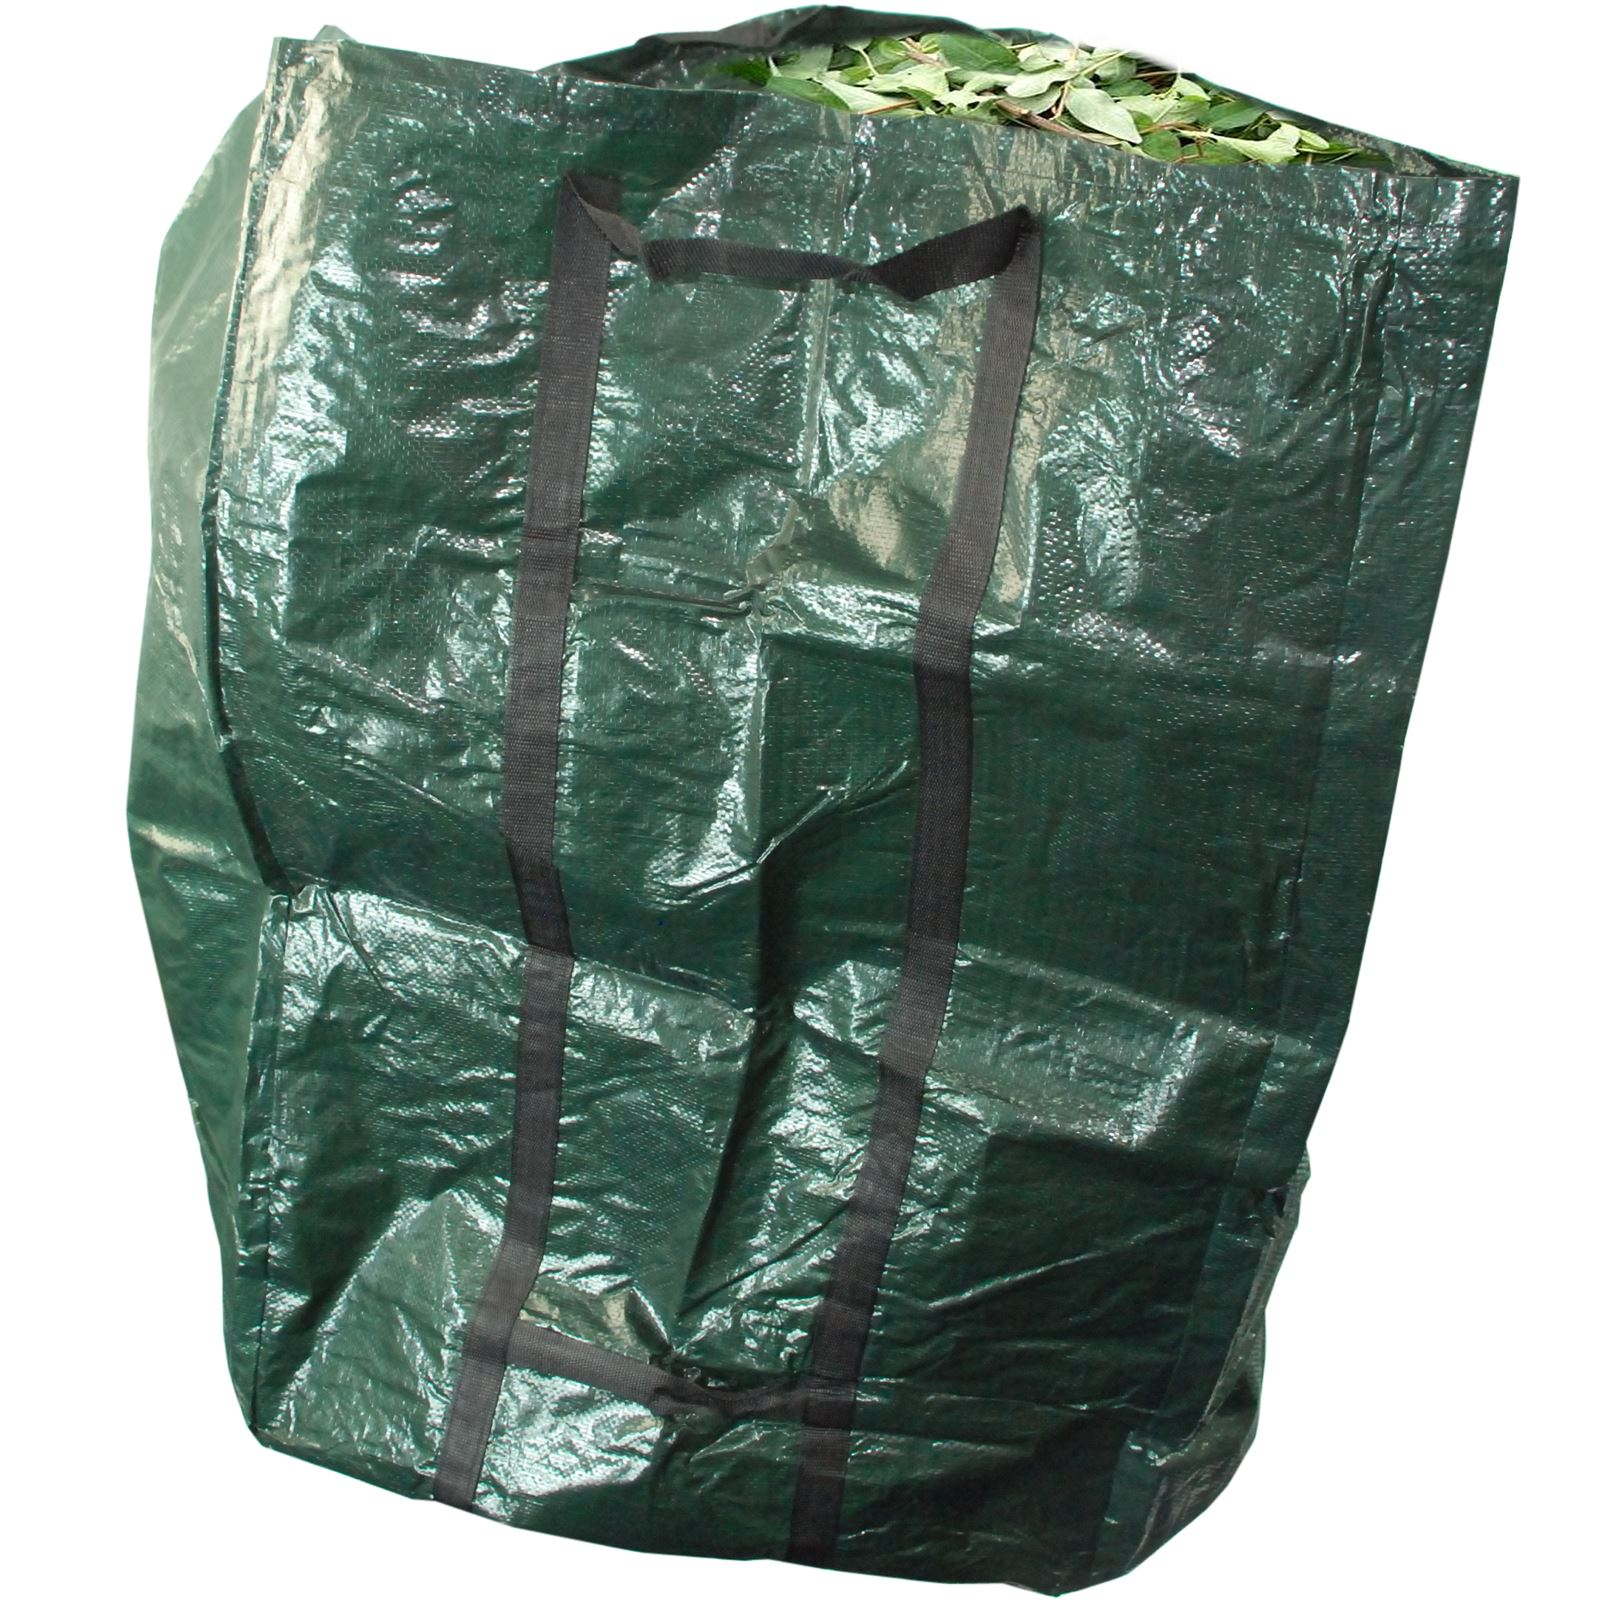 Garden waste heavy duty handle compost grass leaves soil for Compost soil bags